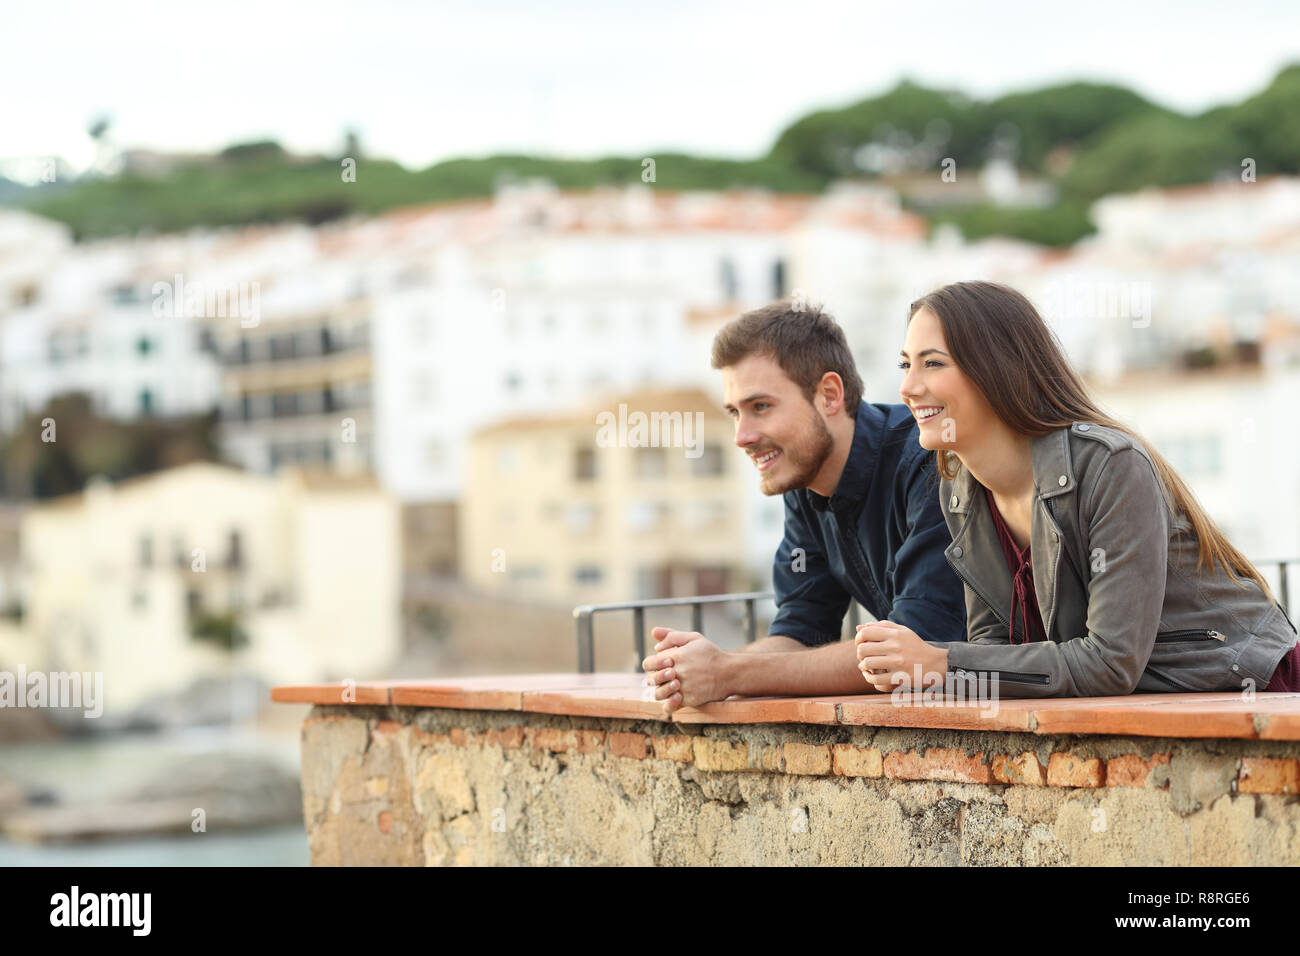 Happy couple contemplating views from a balcony on vacation in a coast town - Stock Image